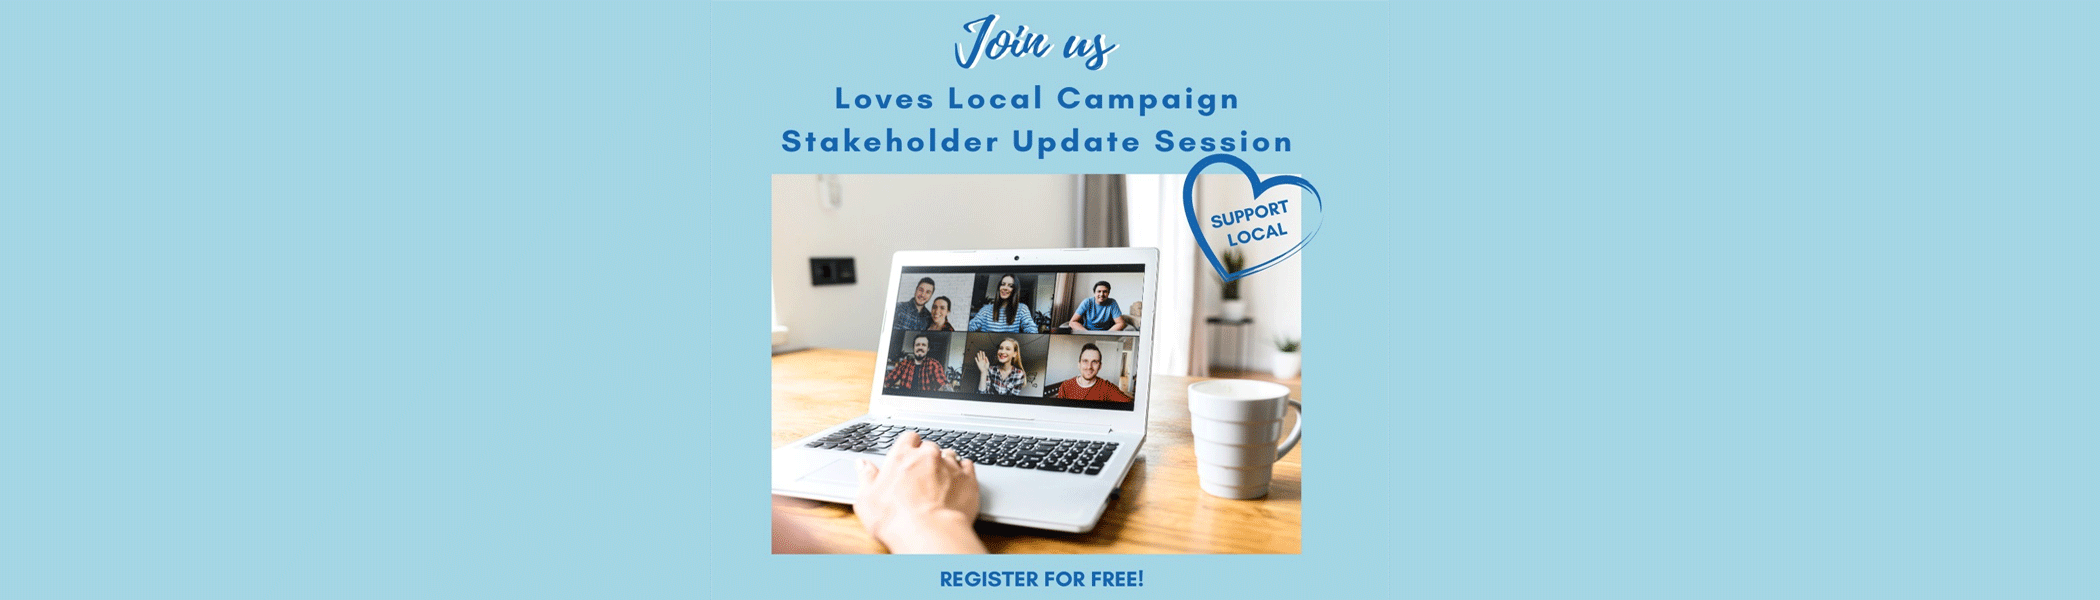 Learn more about Loves Local